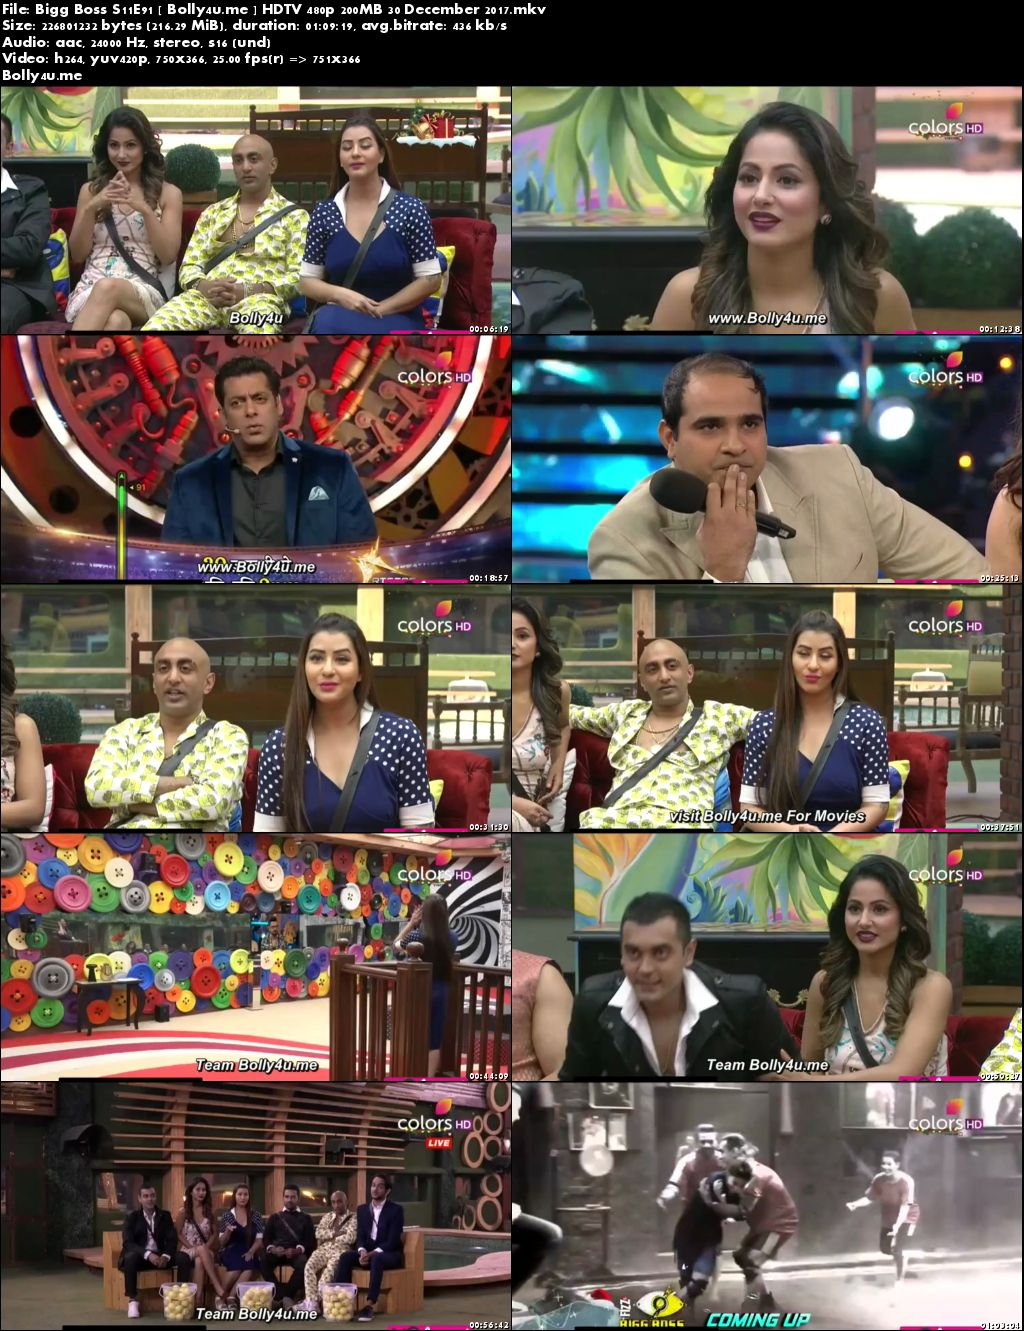 Bigg Boss S11E91 HDTV 480p 200MB 30 Dec 2017 Download